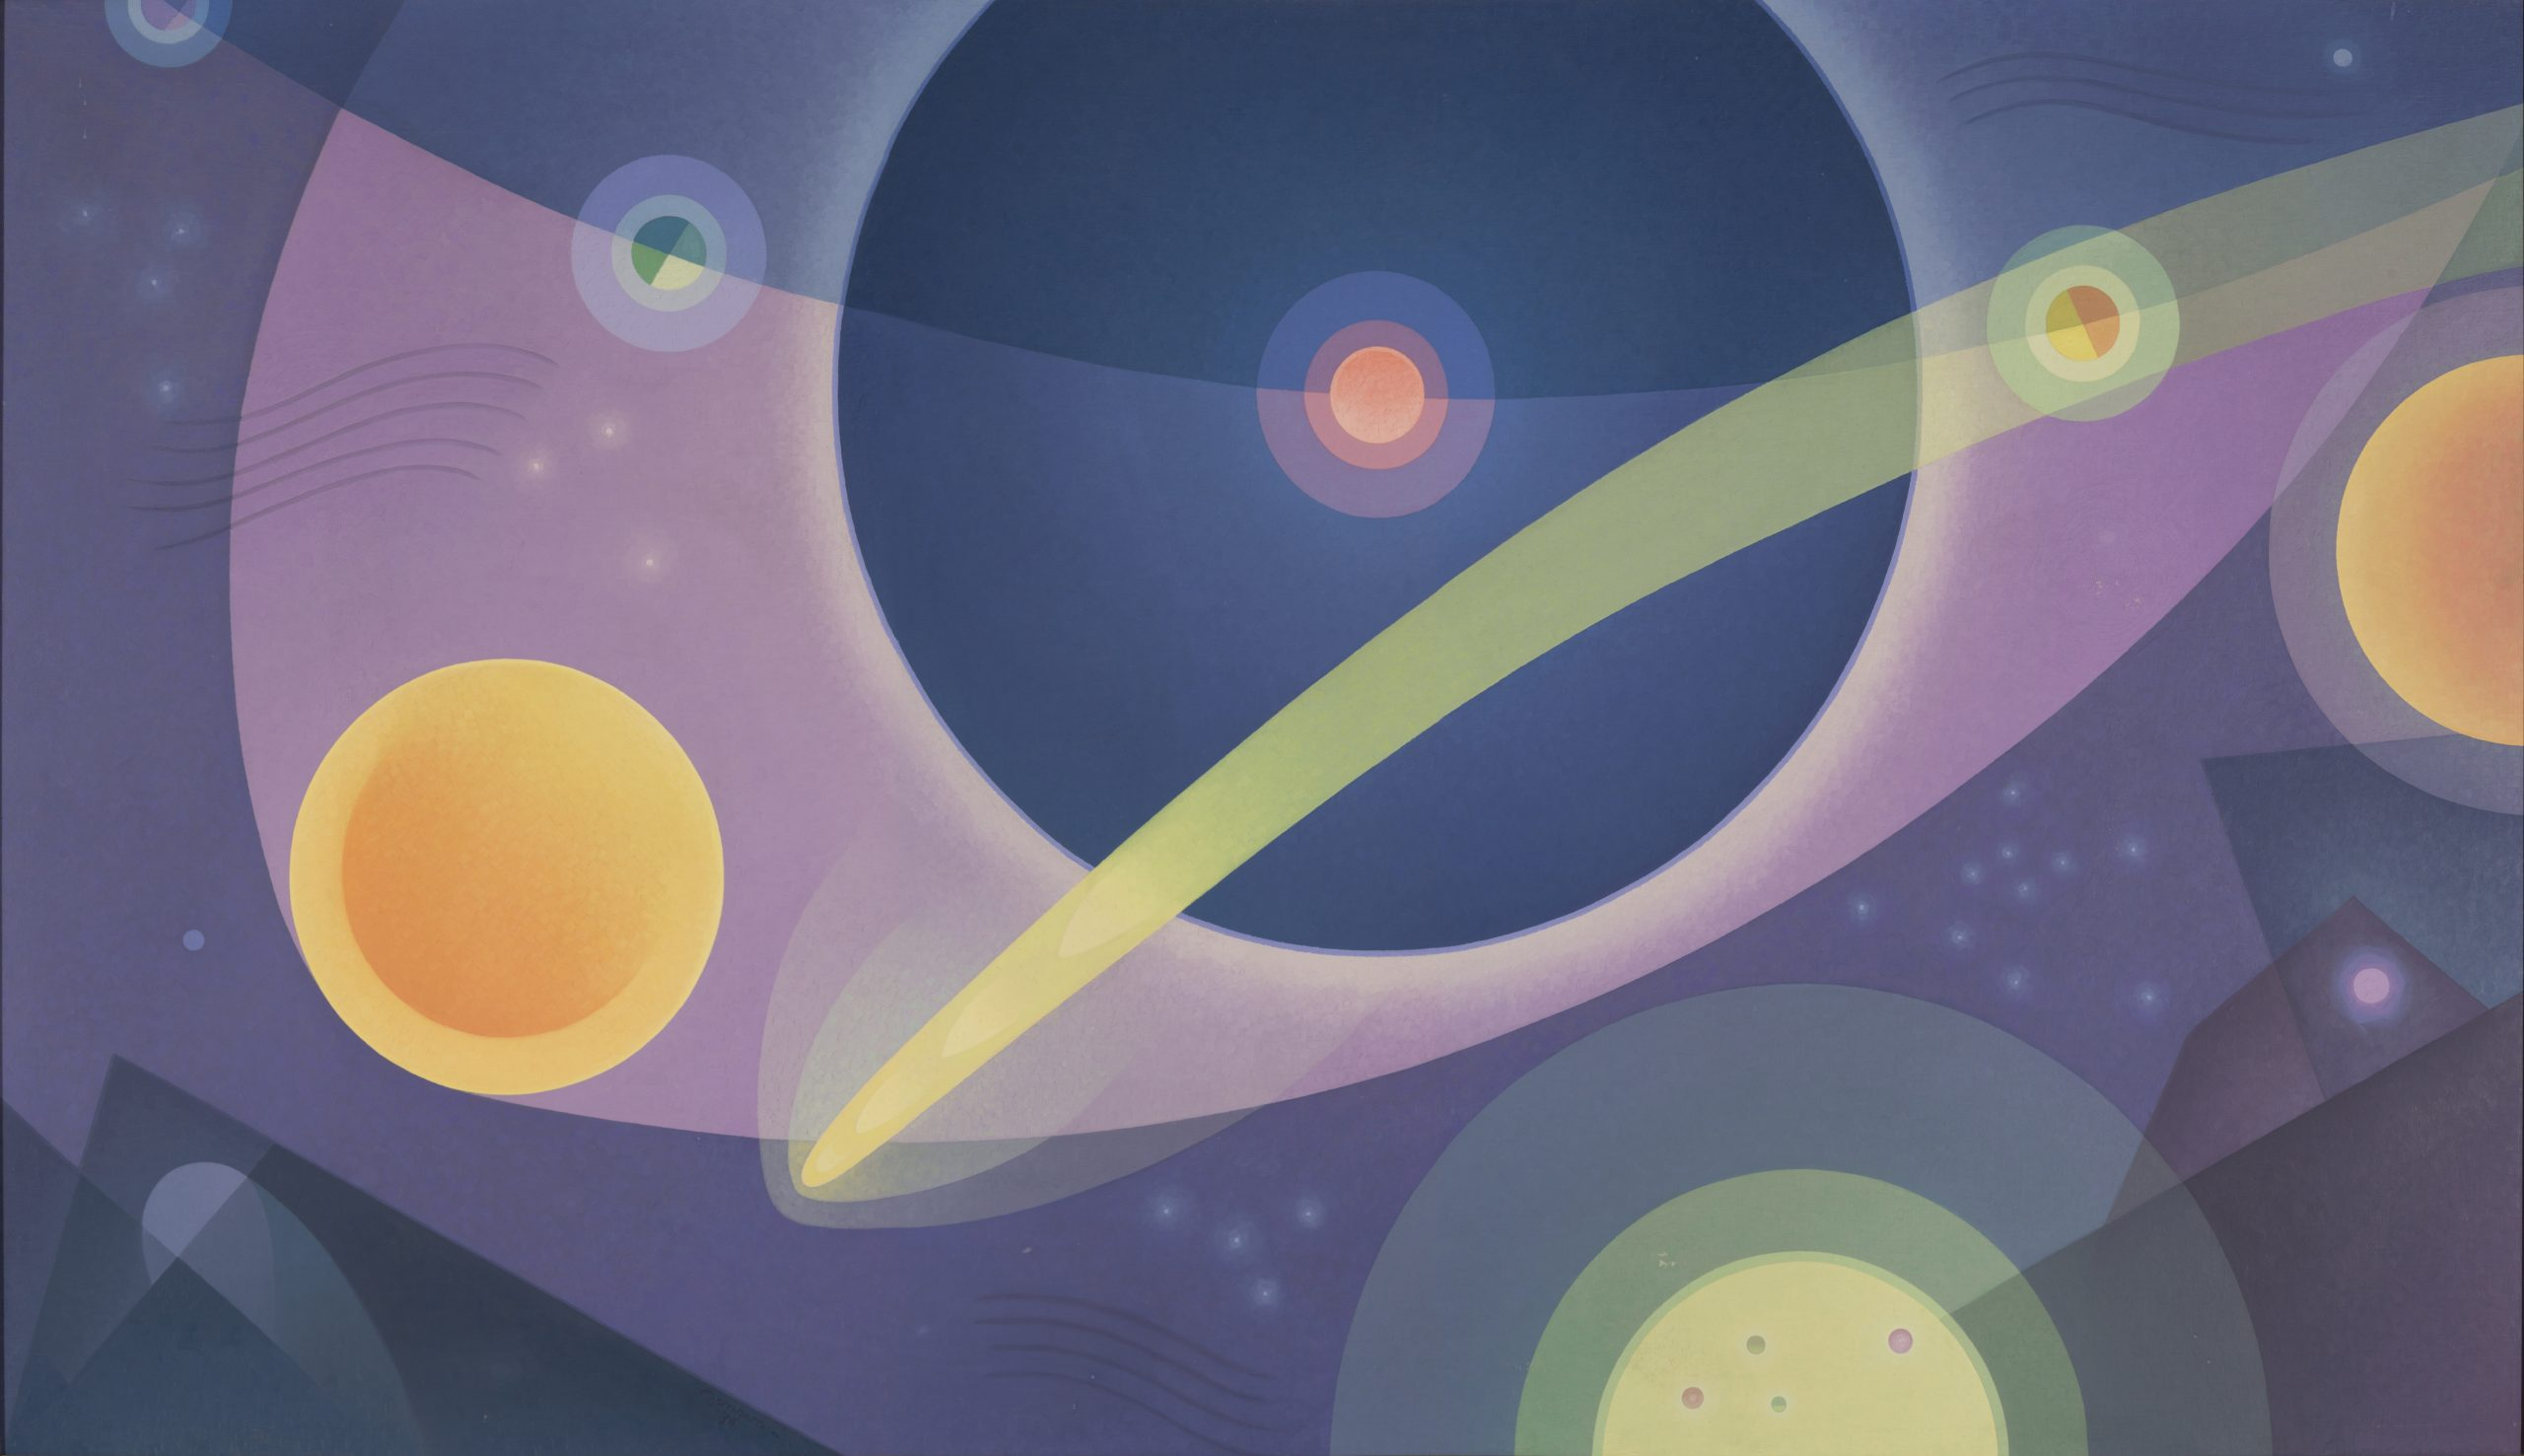 Astronomy from the series The Cycles of Science, 1934, Oil on canvas, Acquired through the Works Progress Administration (WPA) of the Federal Government, Raymond Jonson Collection